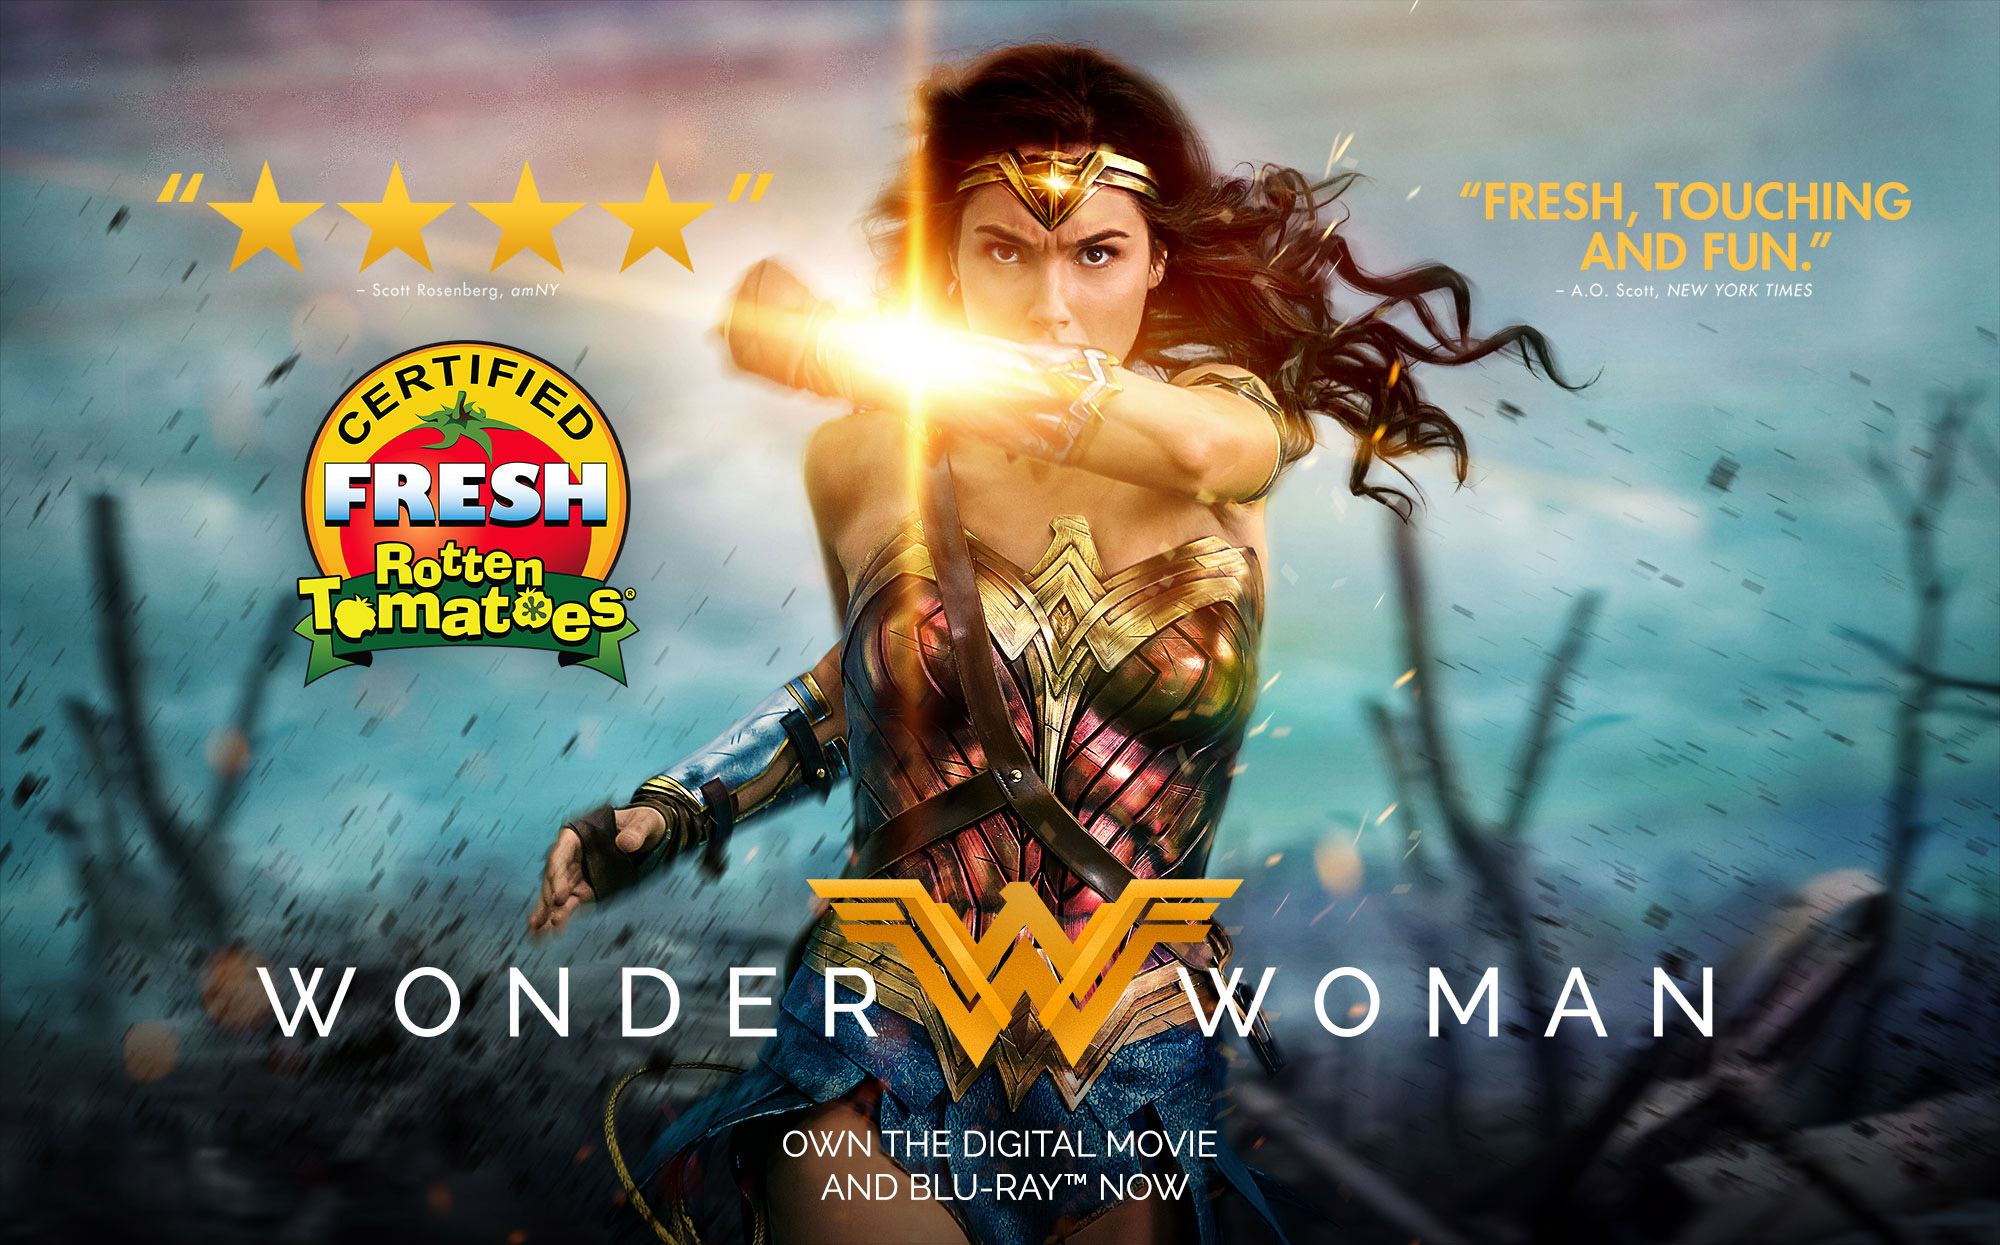 Download Wallpaper Superman 3d Wonder Woman Official Movie Site Own The Digital Movie Now